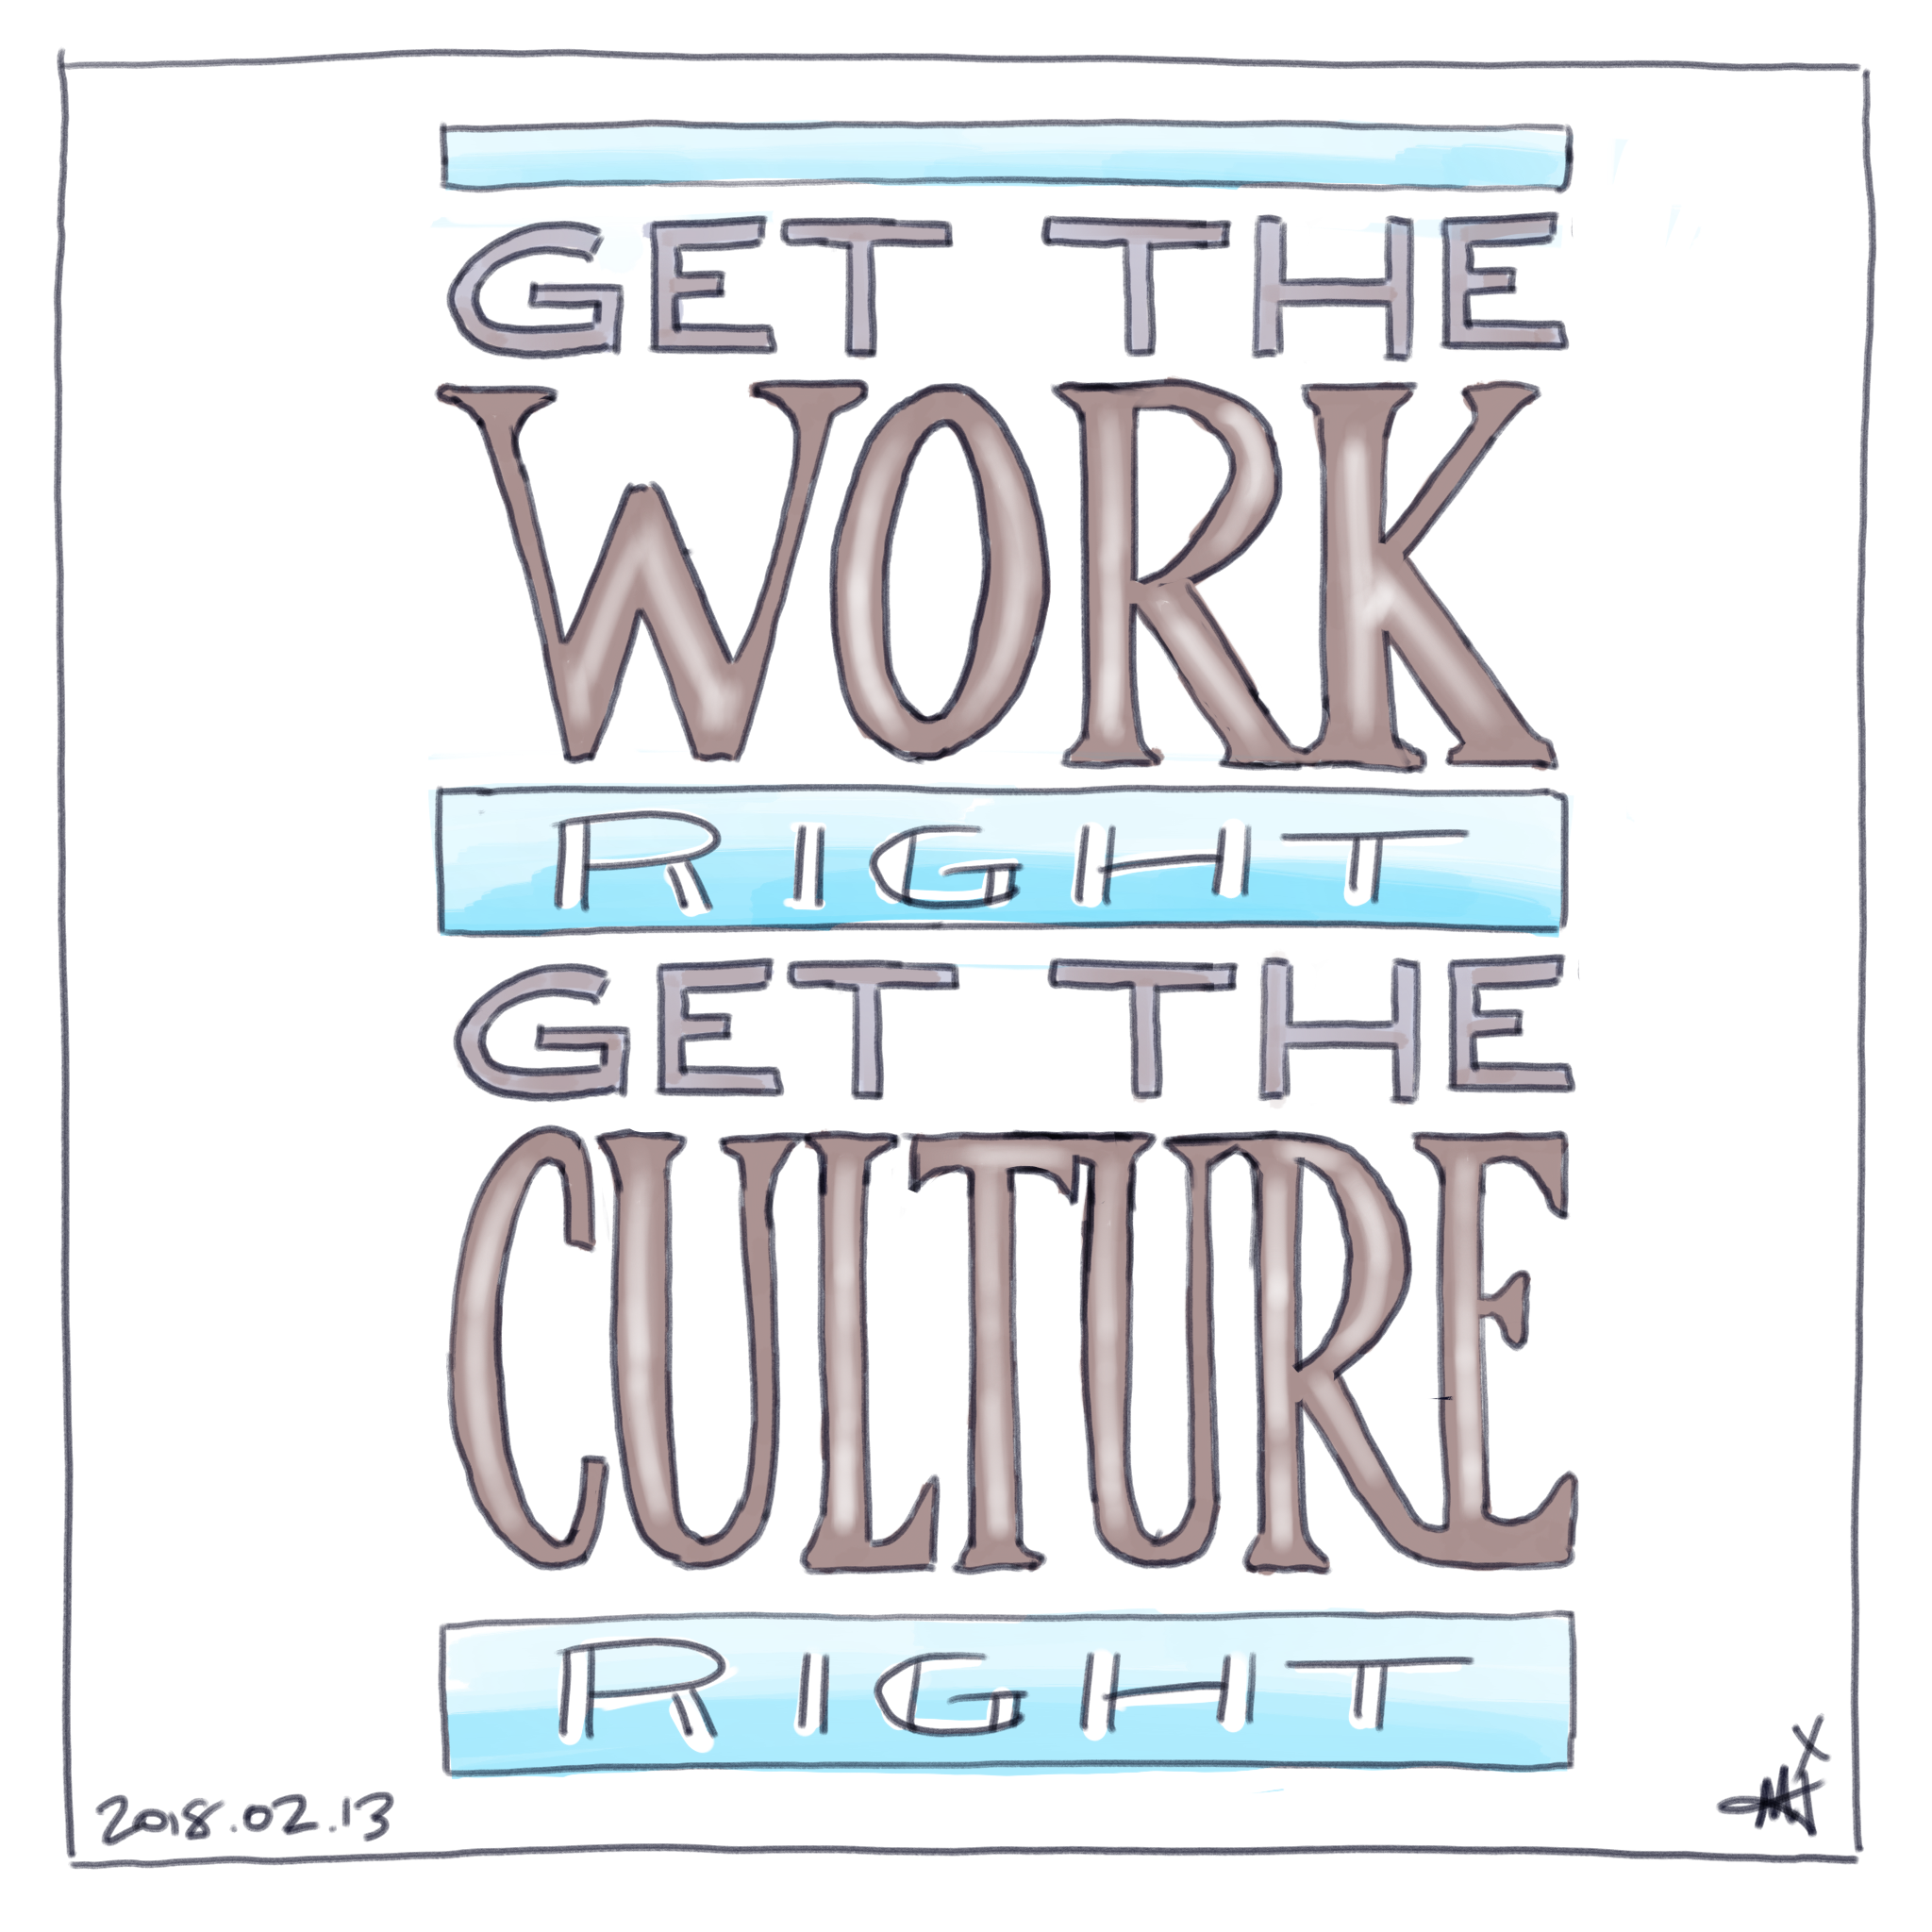 Work_And_Culture.png